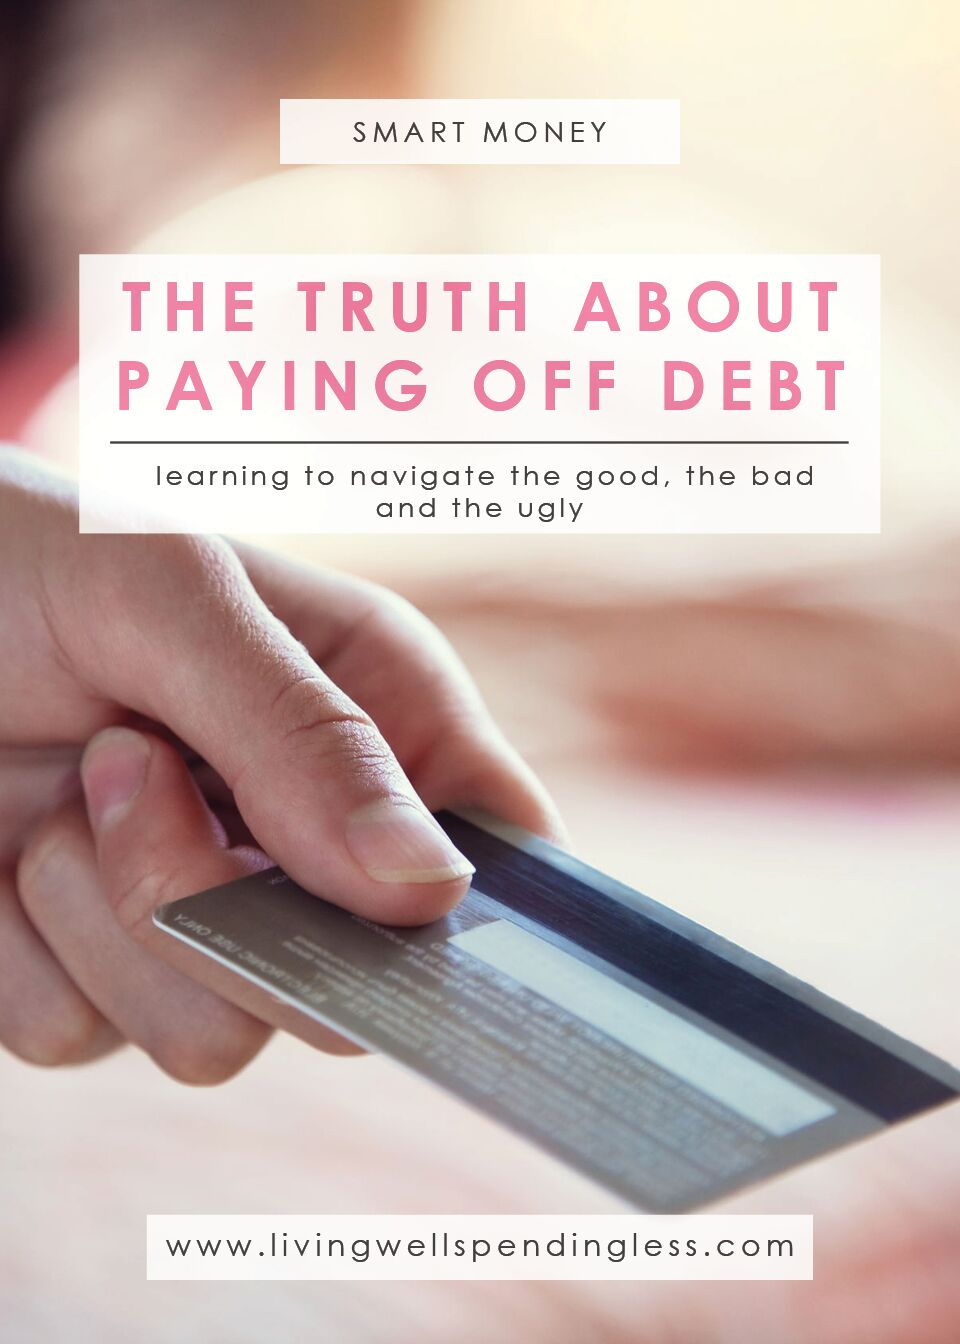 The Truth About Paying Off Debt